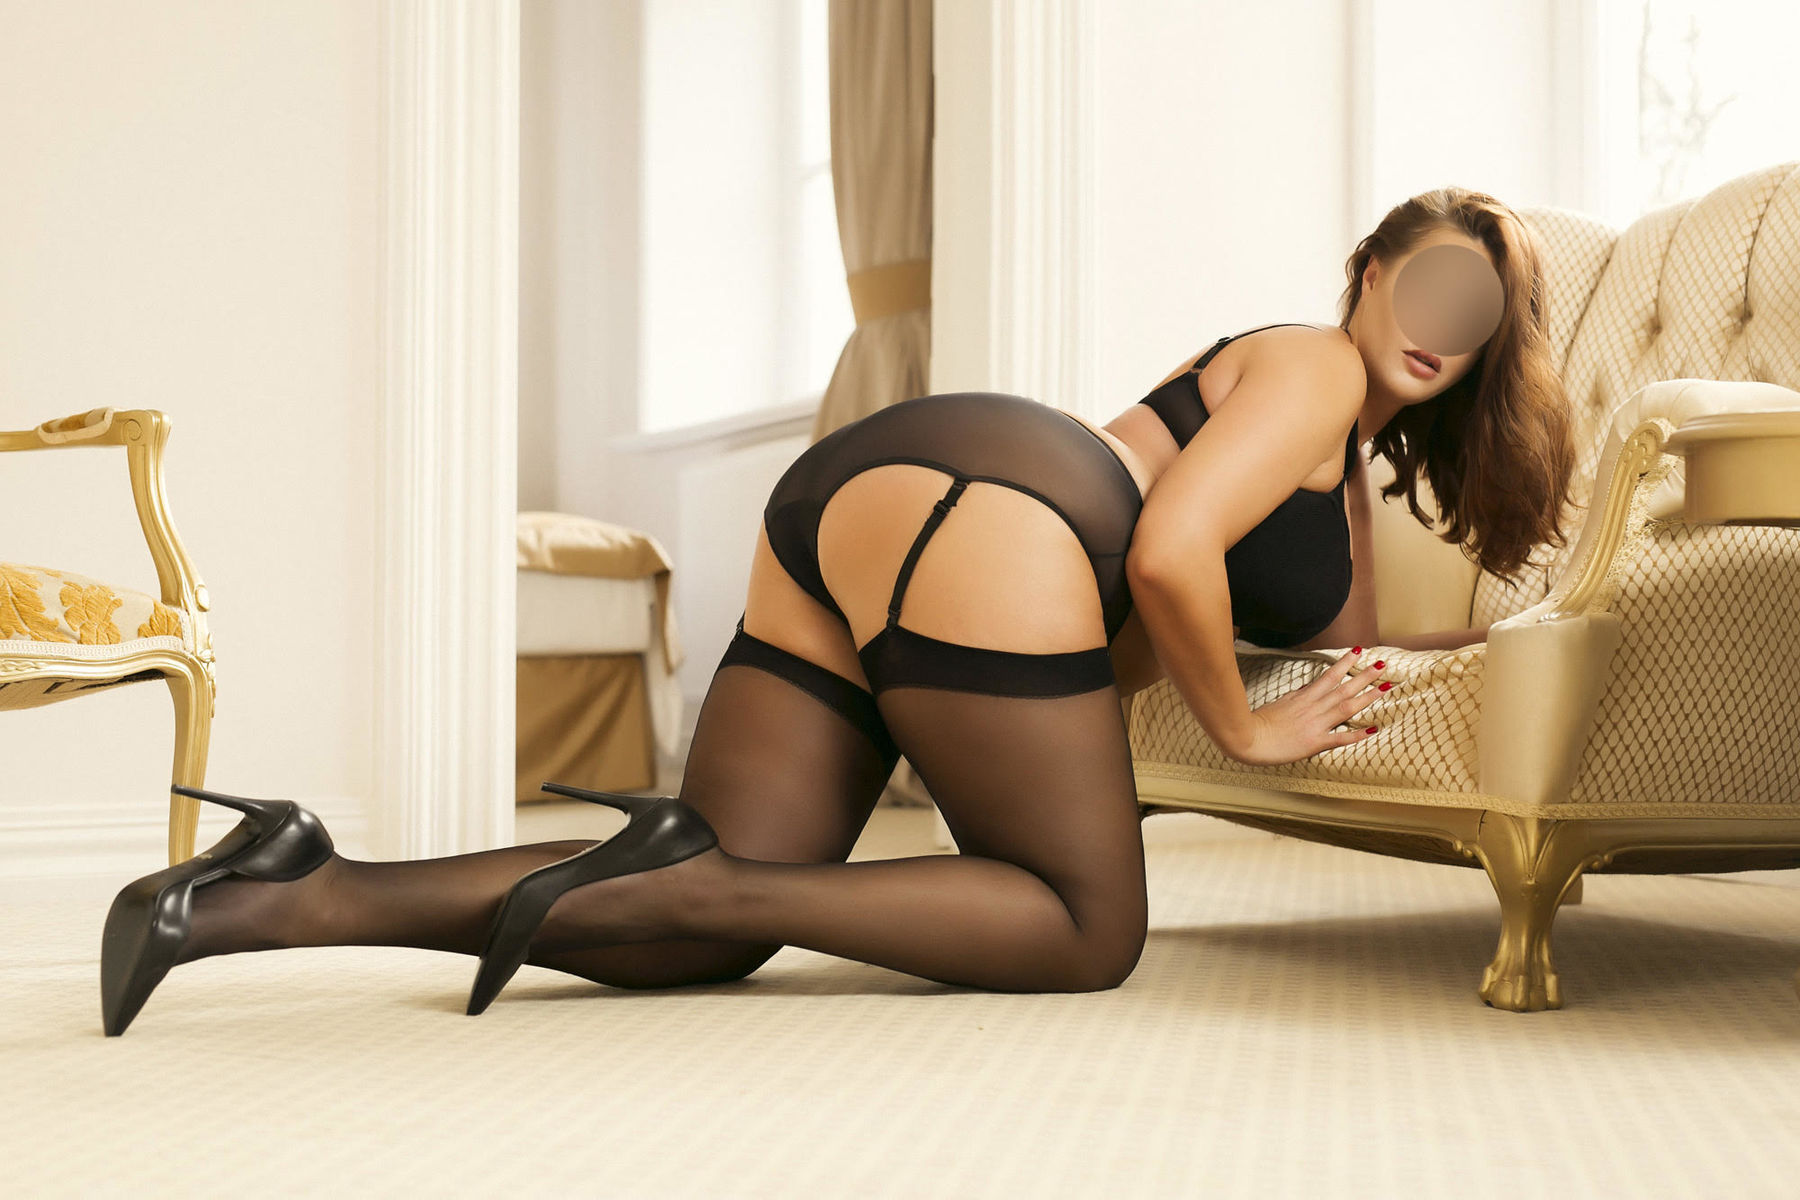 oslo massage escort spain escort